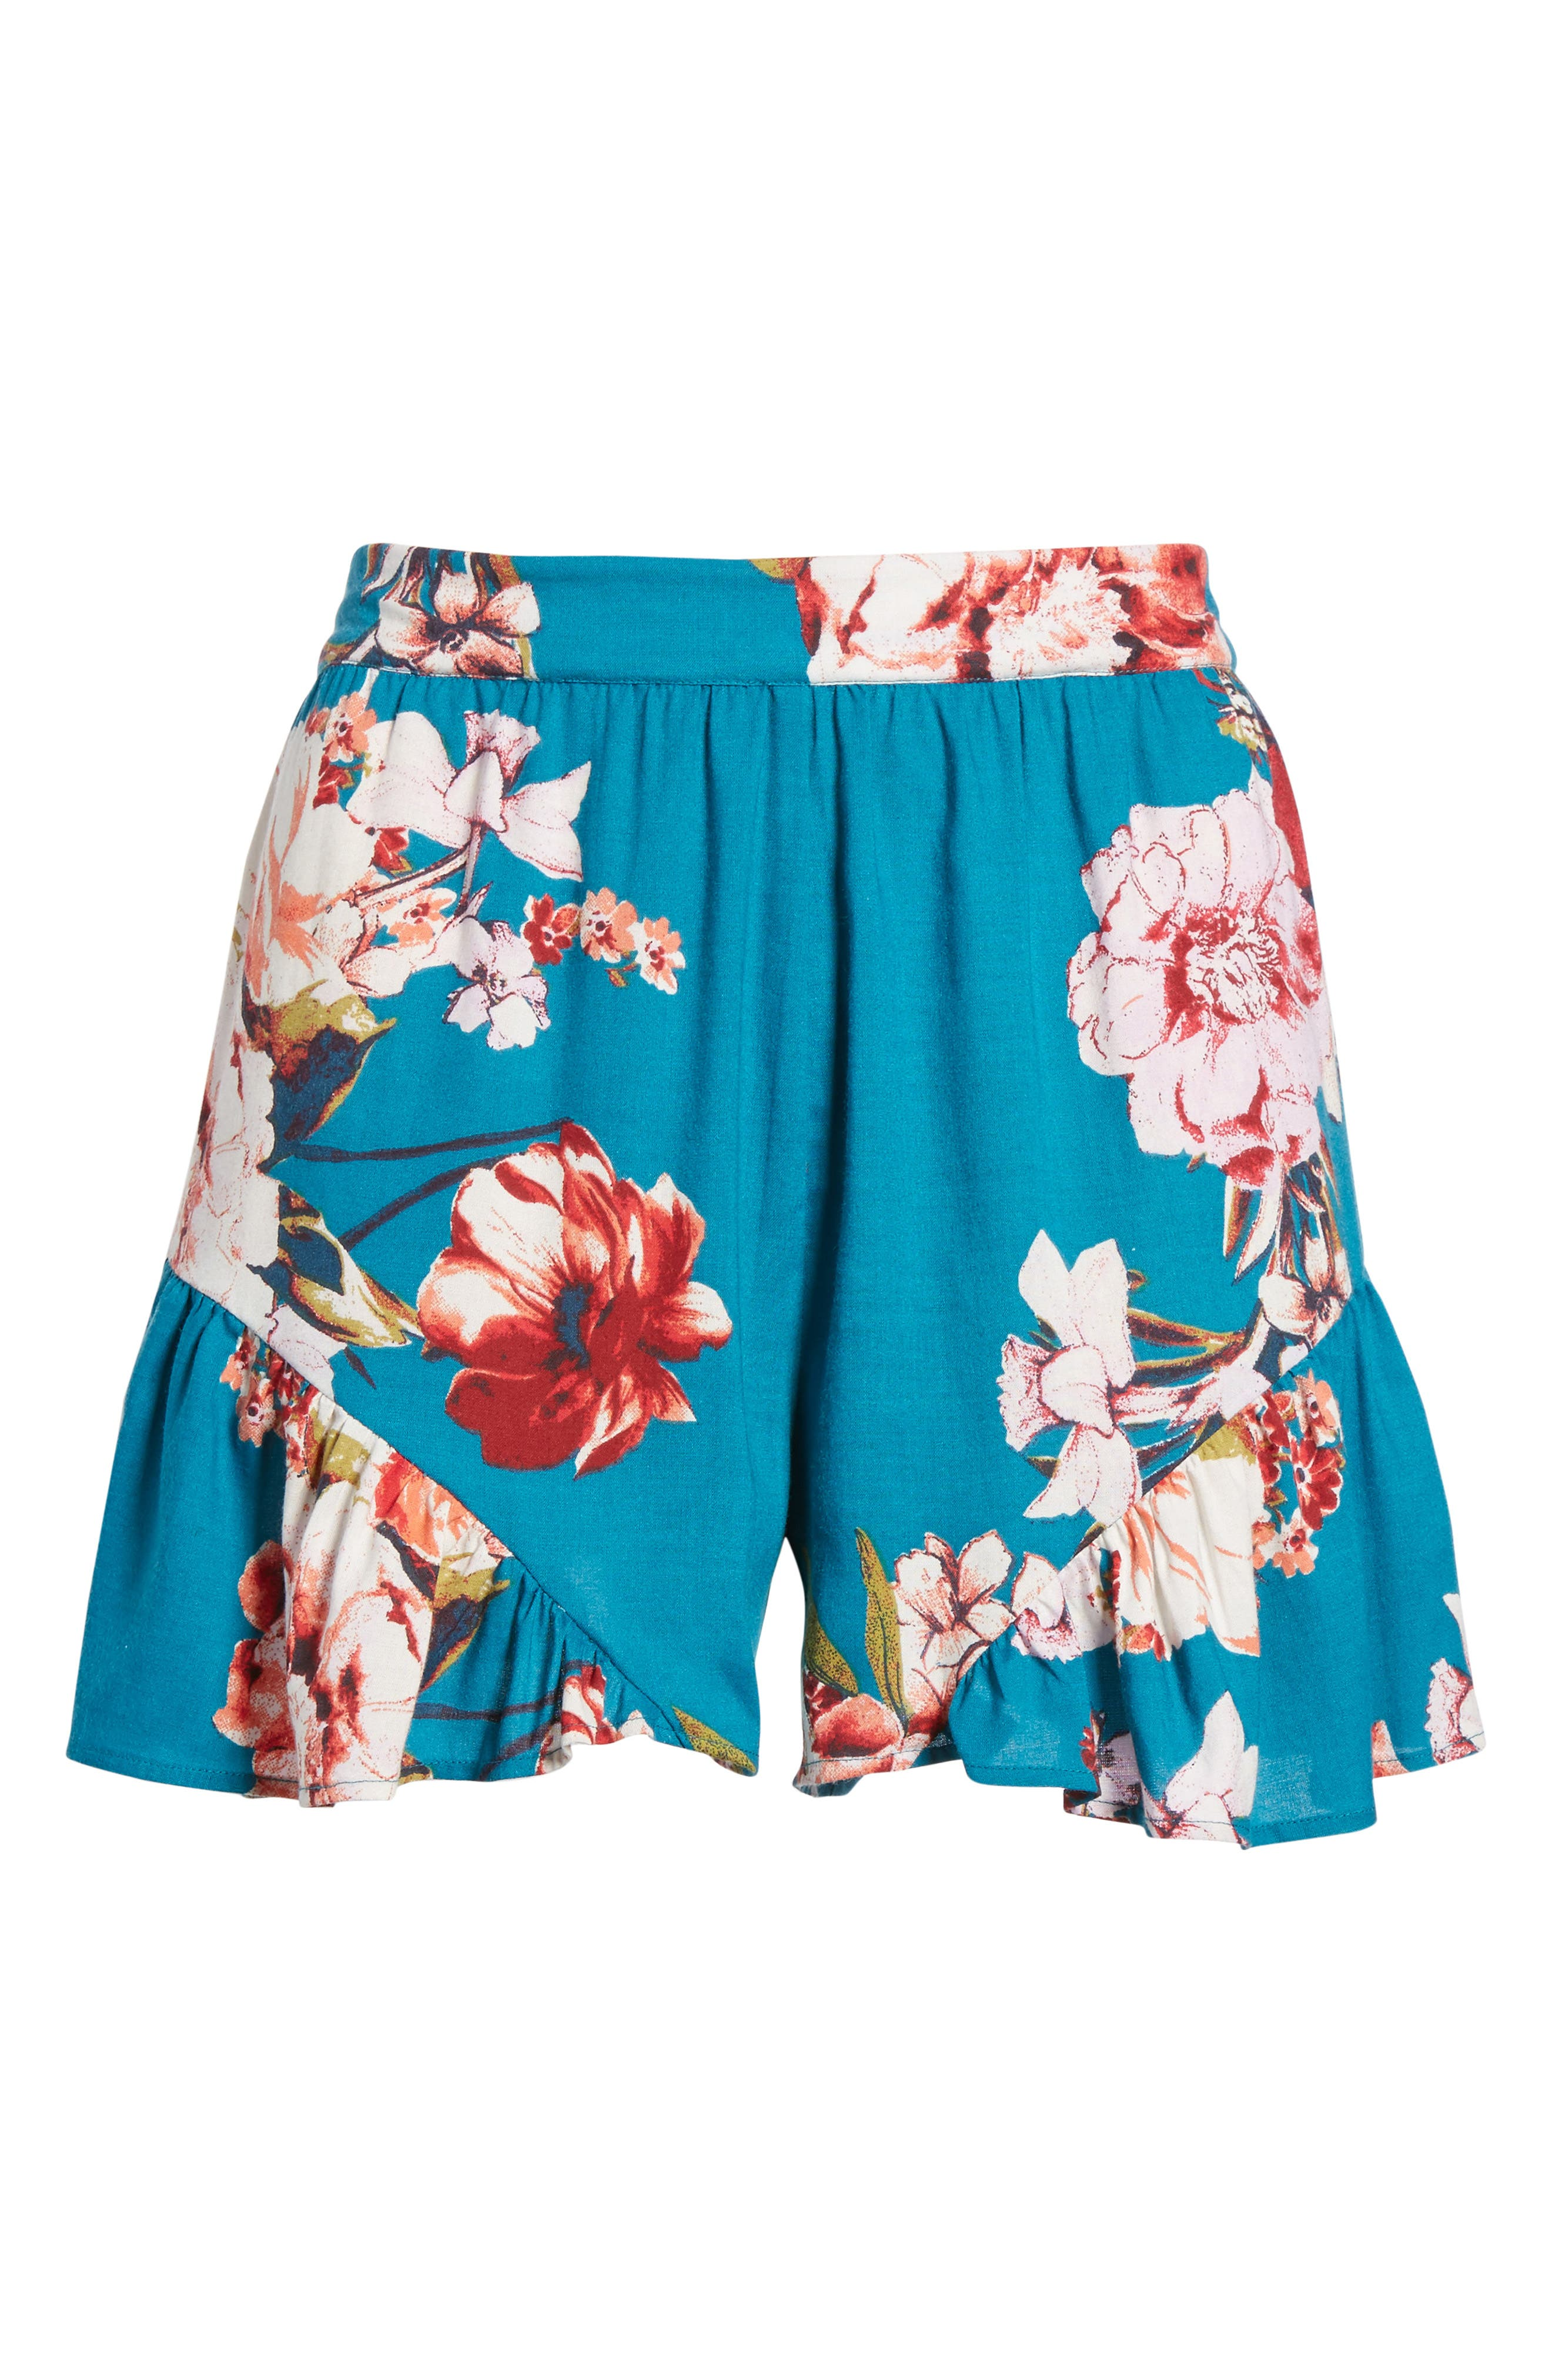 Floral Print Ruffle Hem Shorts,                             Alternate thumbnail 6, color,                             405